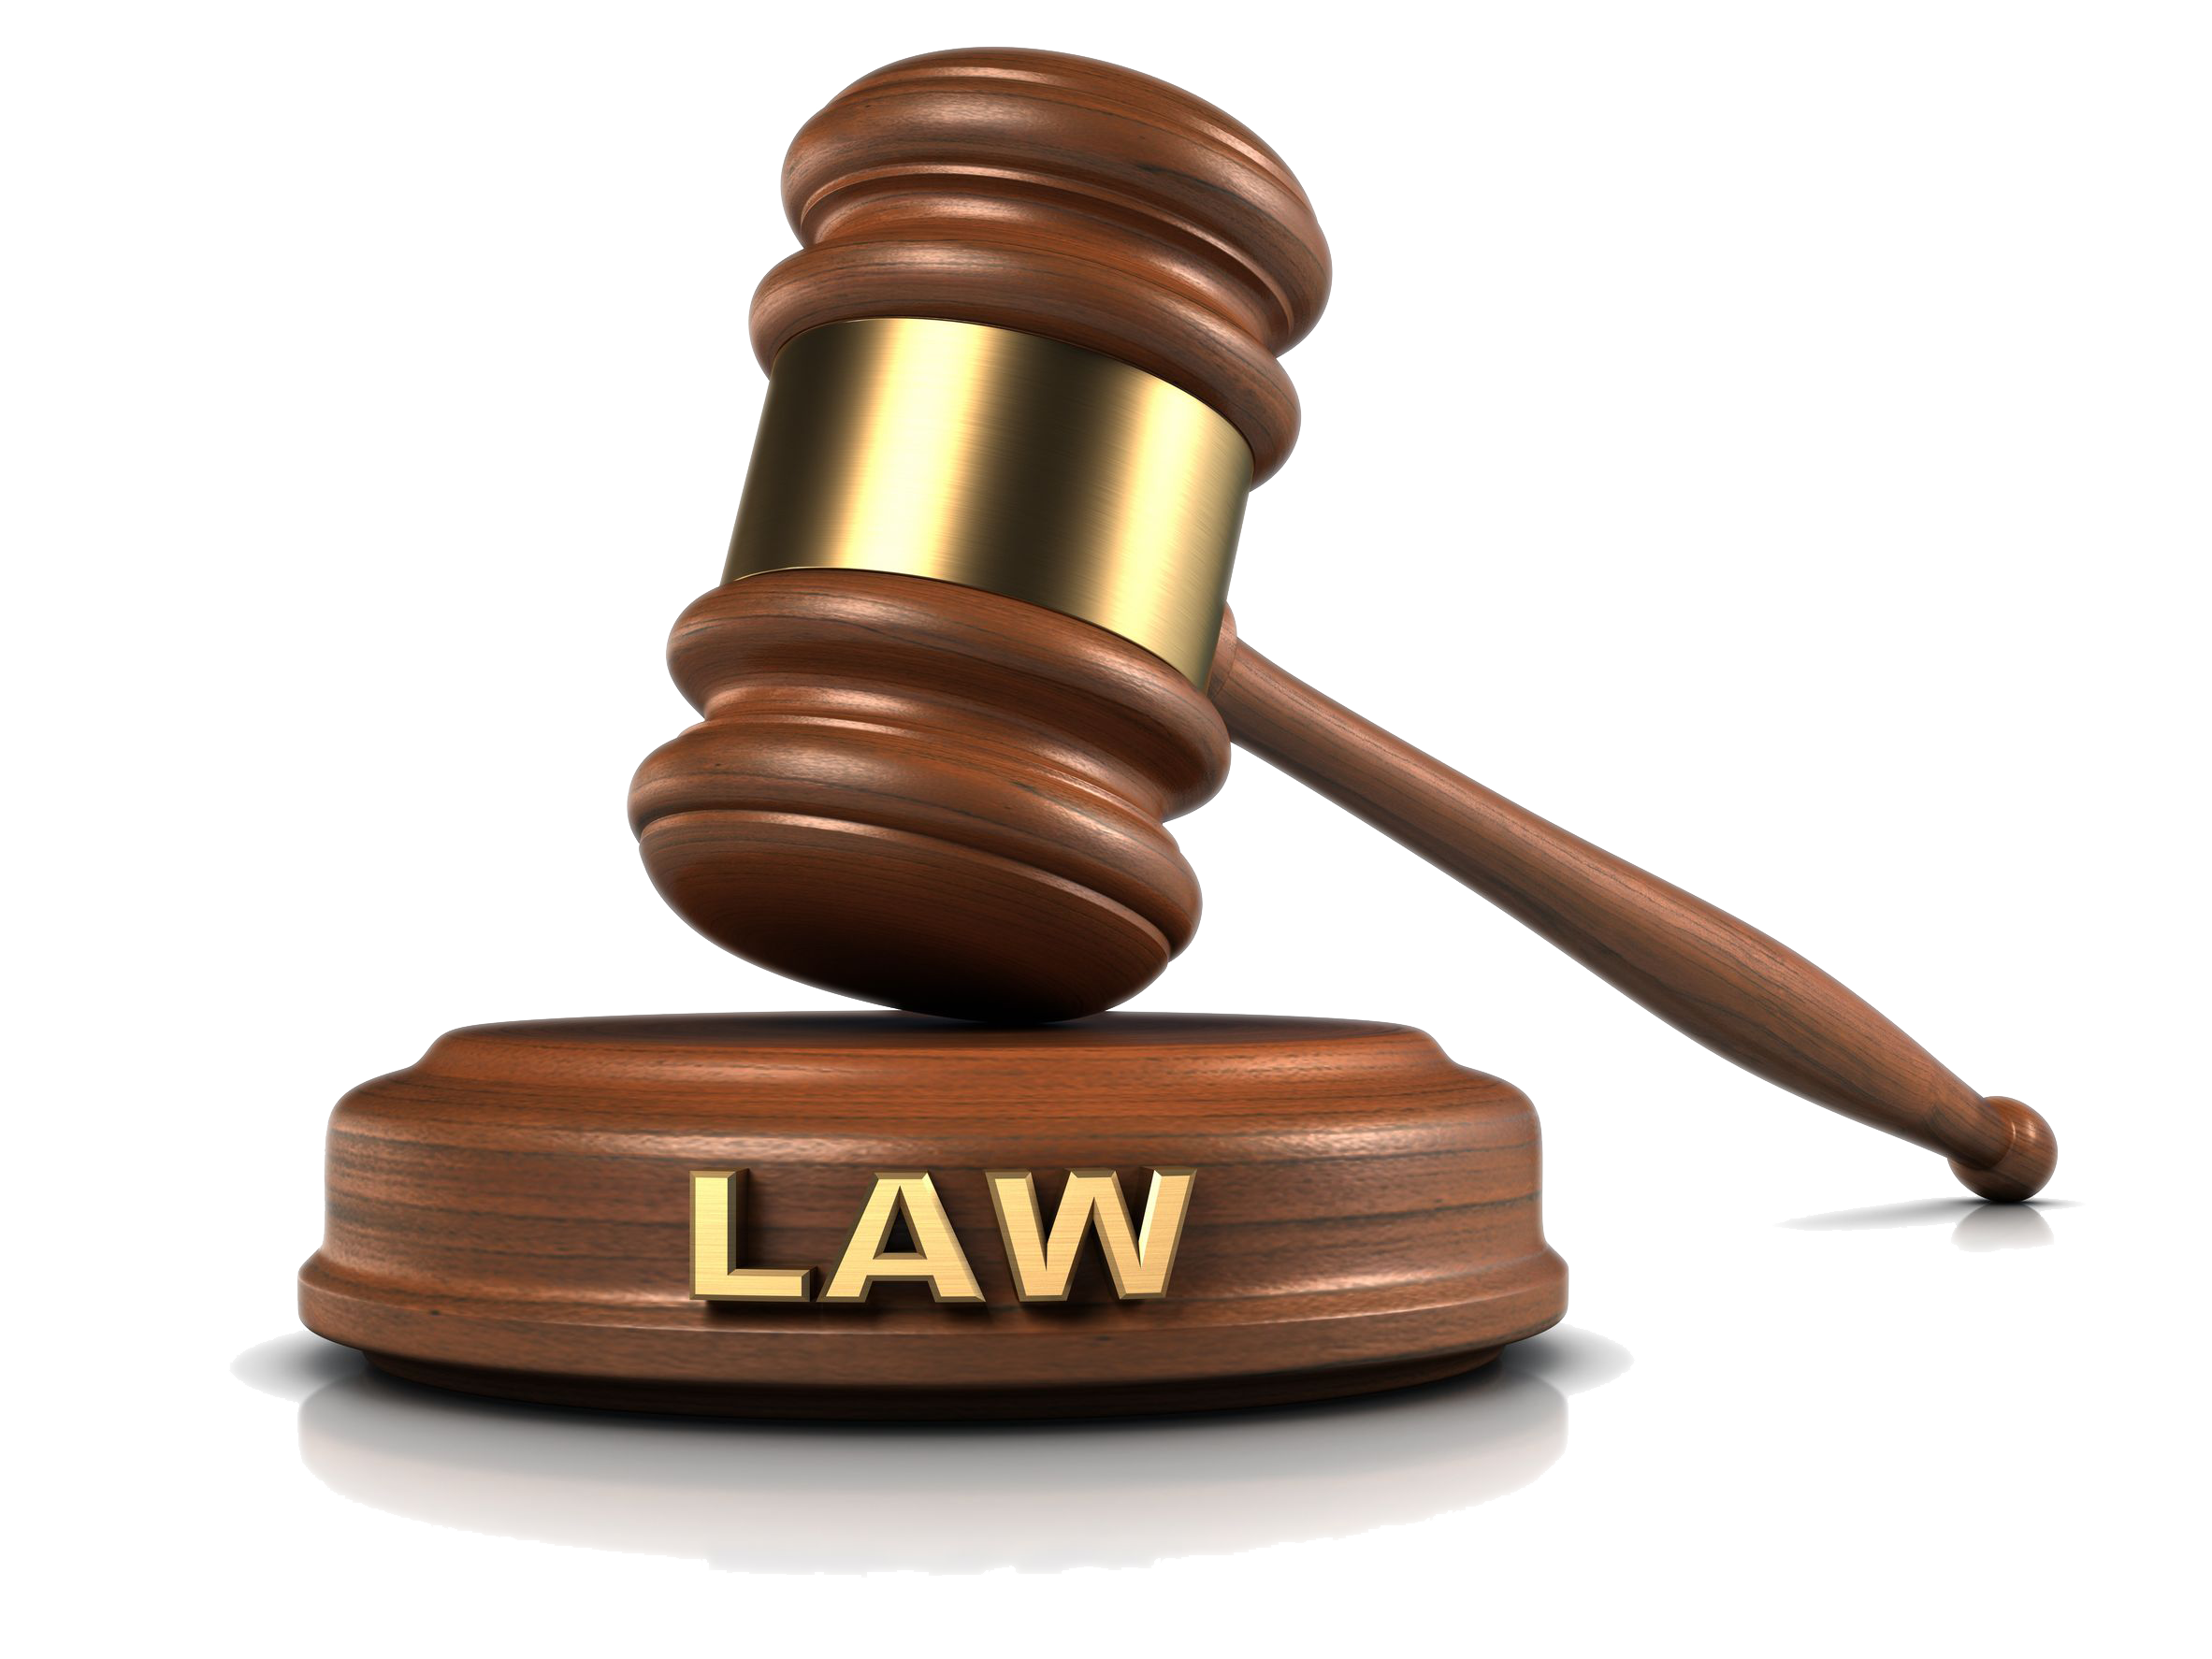 Law transparent hammer. Png images pluspng court